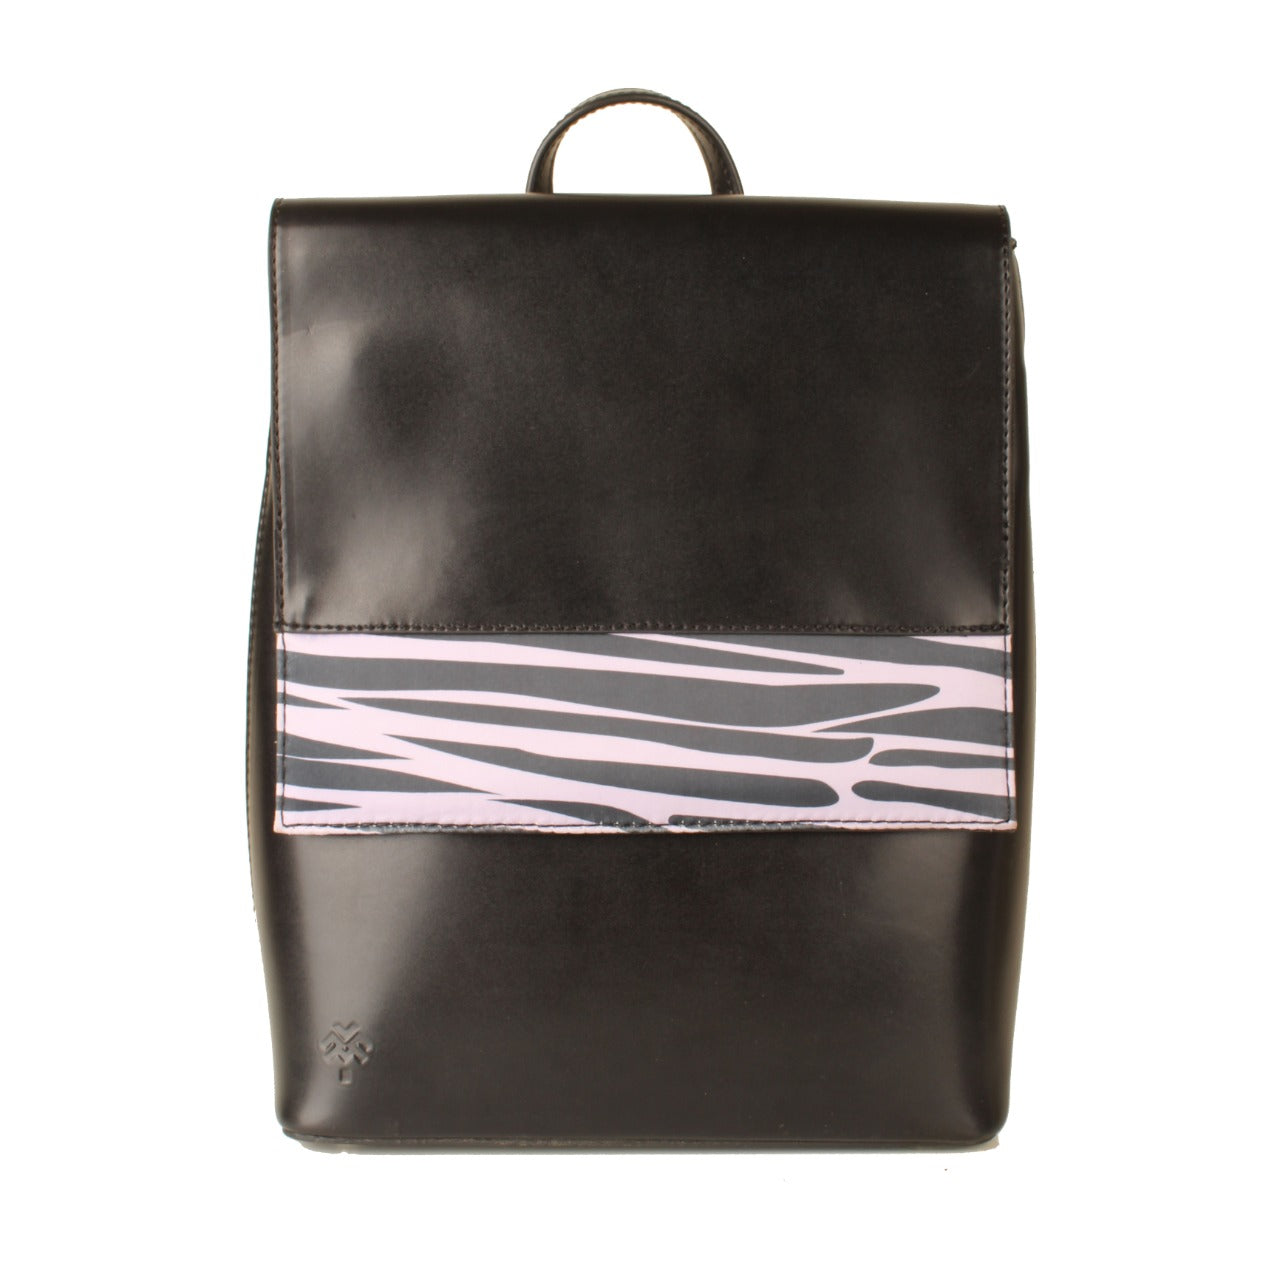 Wild Thing City Bag Black & Lavender